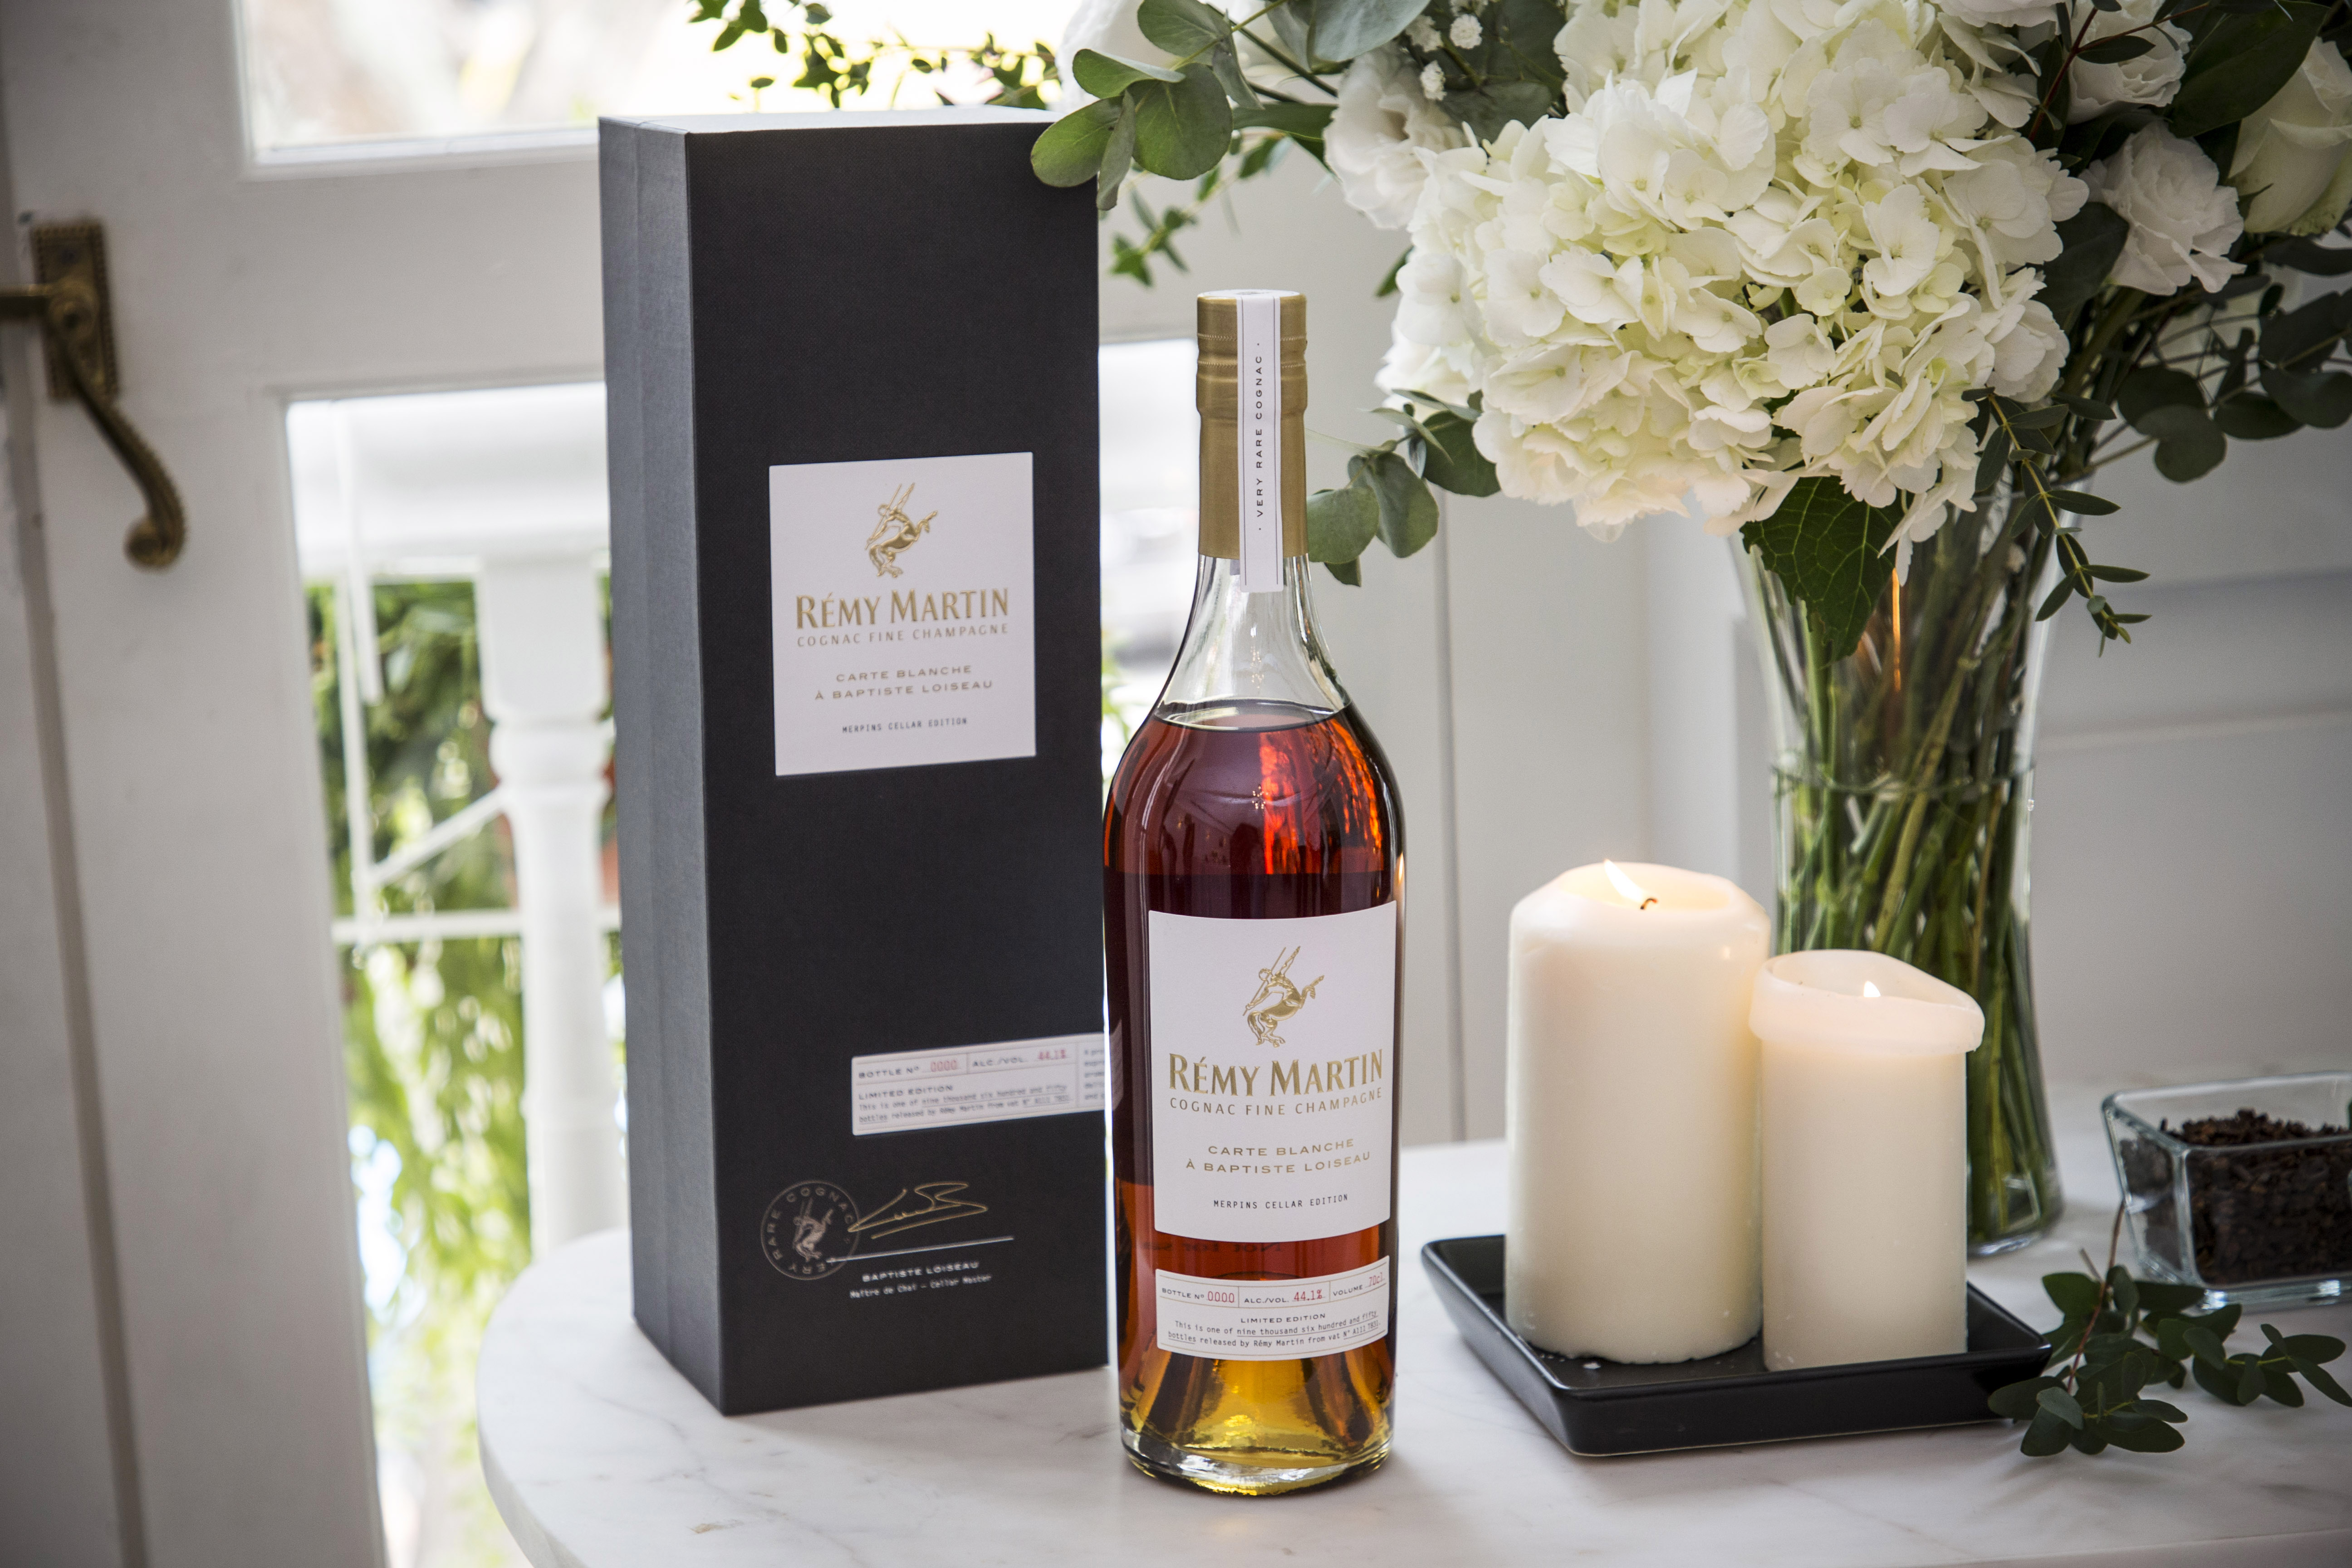 The Rémy Martin Carte Blanche Merpins Cellar Edition is an exquisite treat